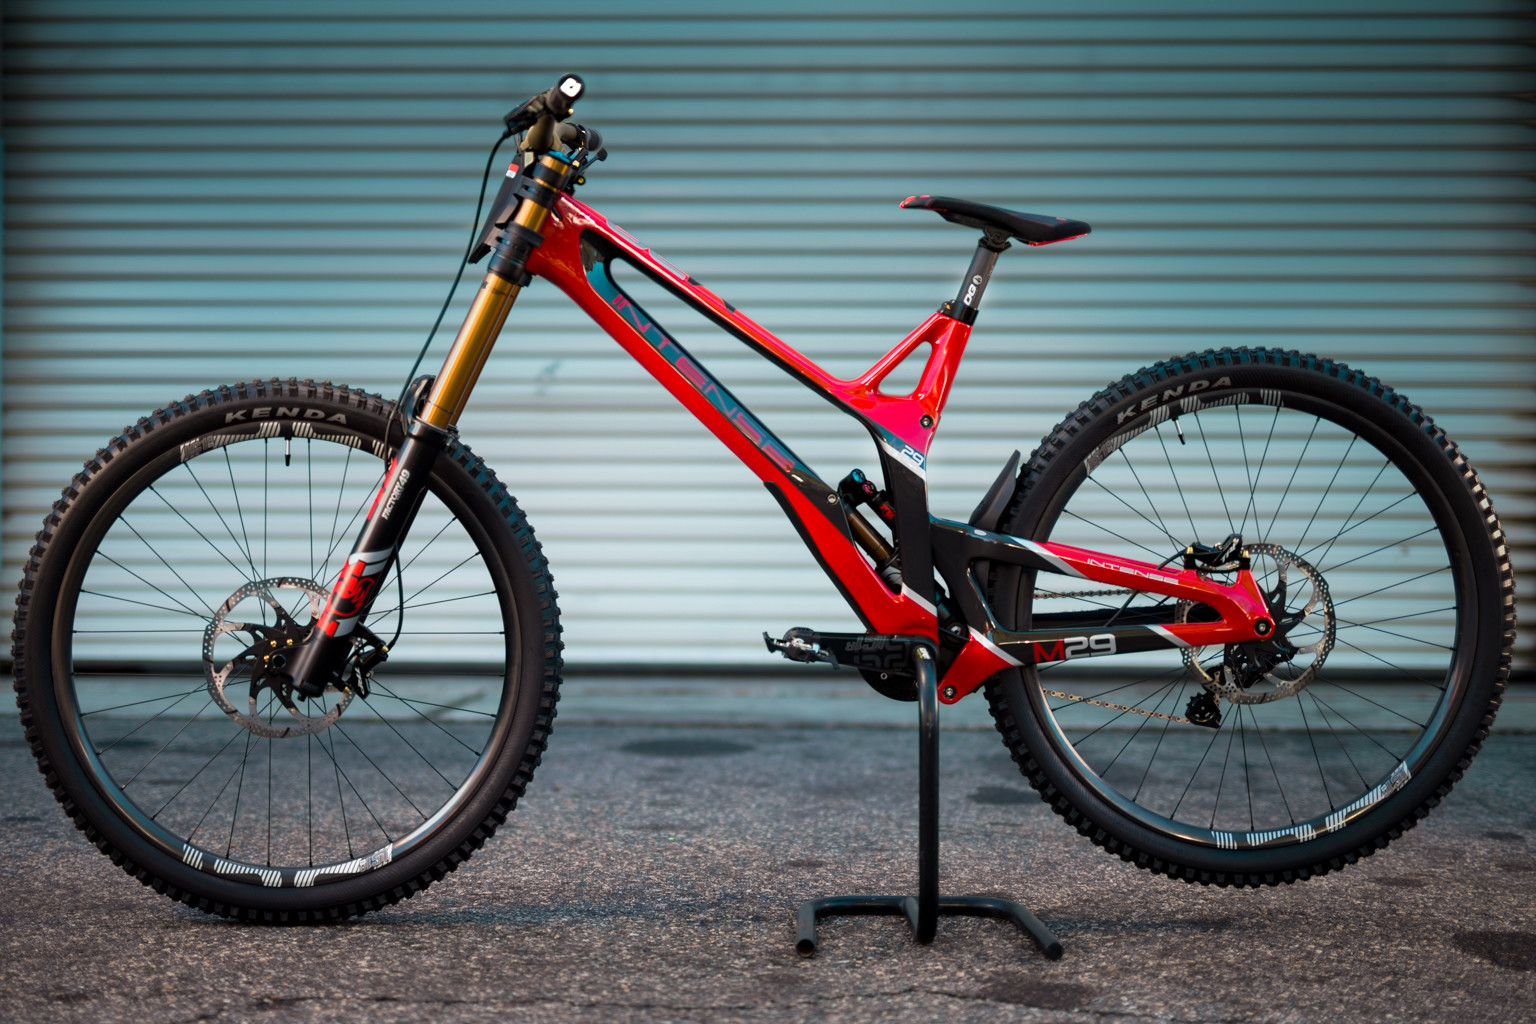 38f4ddb68cb Intense Factory Racing has gone from the SRAM/RockShox/ENVE/Maxxis builds  of 2018 to the semi-random-but-now-proven assortment of parts ...